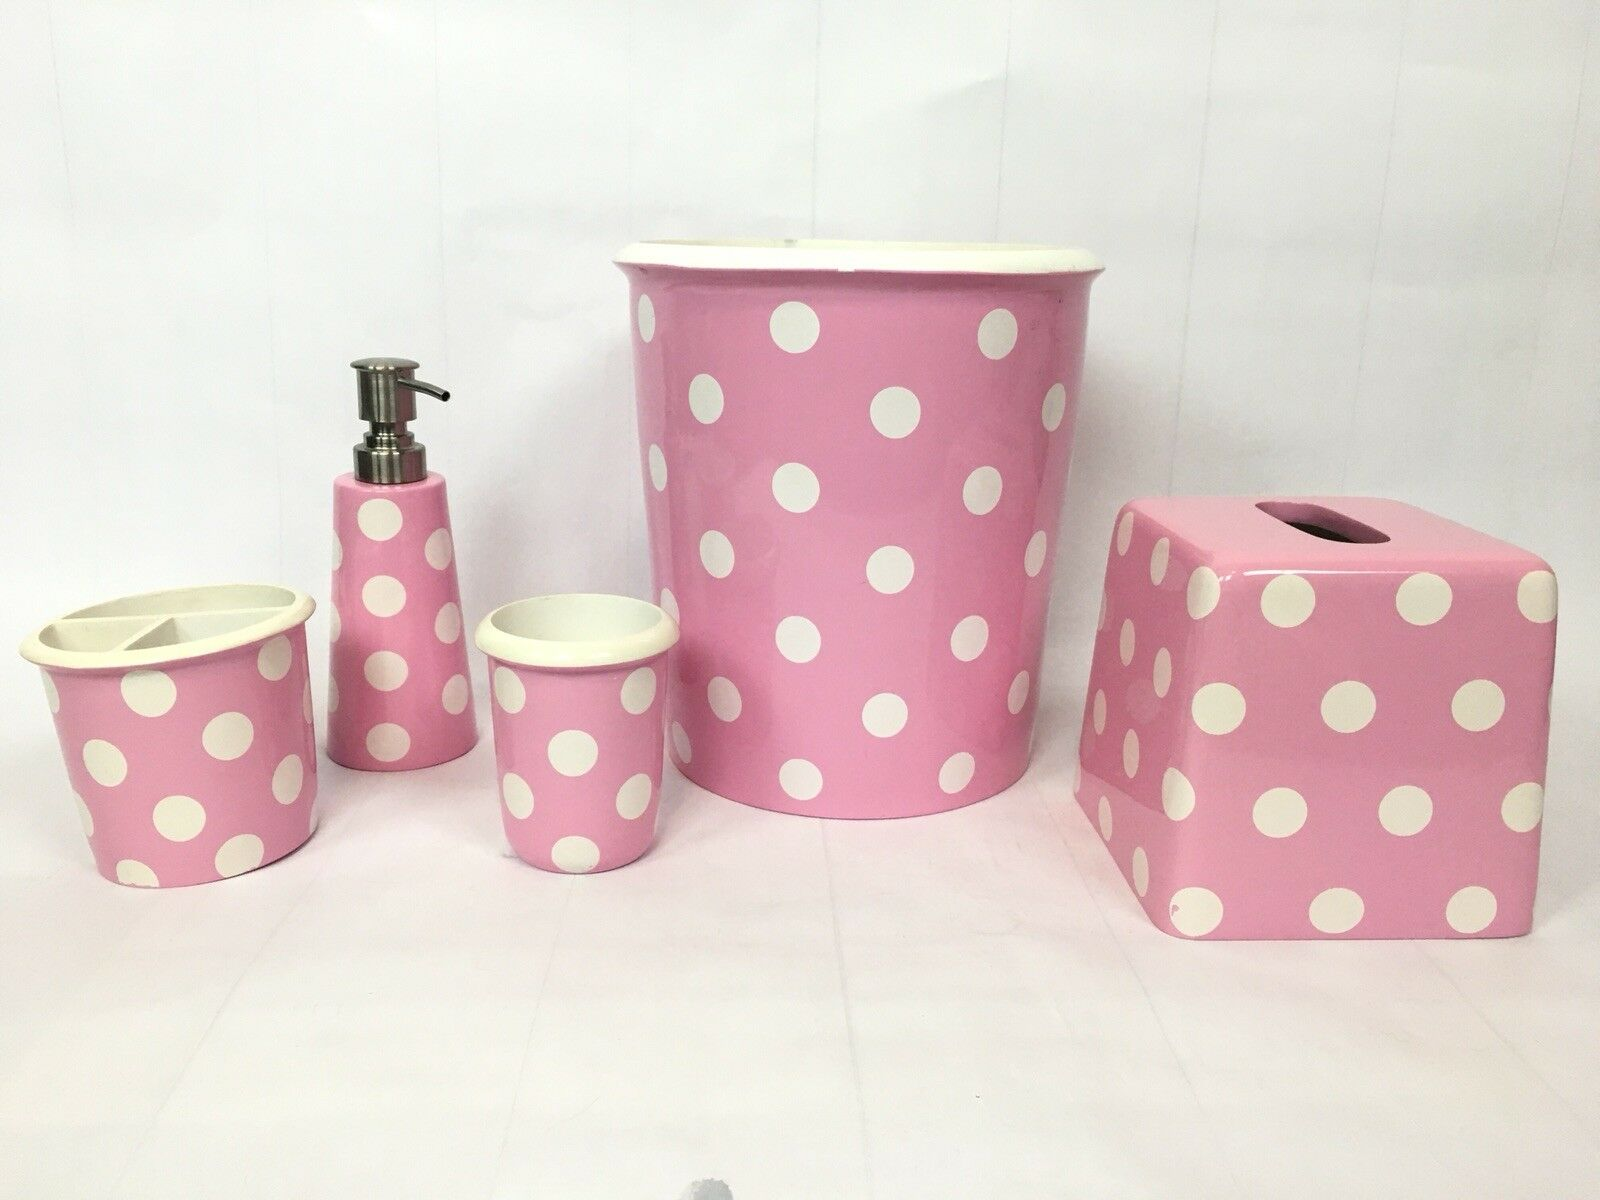 Pottery Barn Kids rose Polka Dot Complete Bathroom Set   Trash Soap Holder Cup